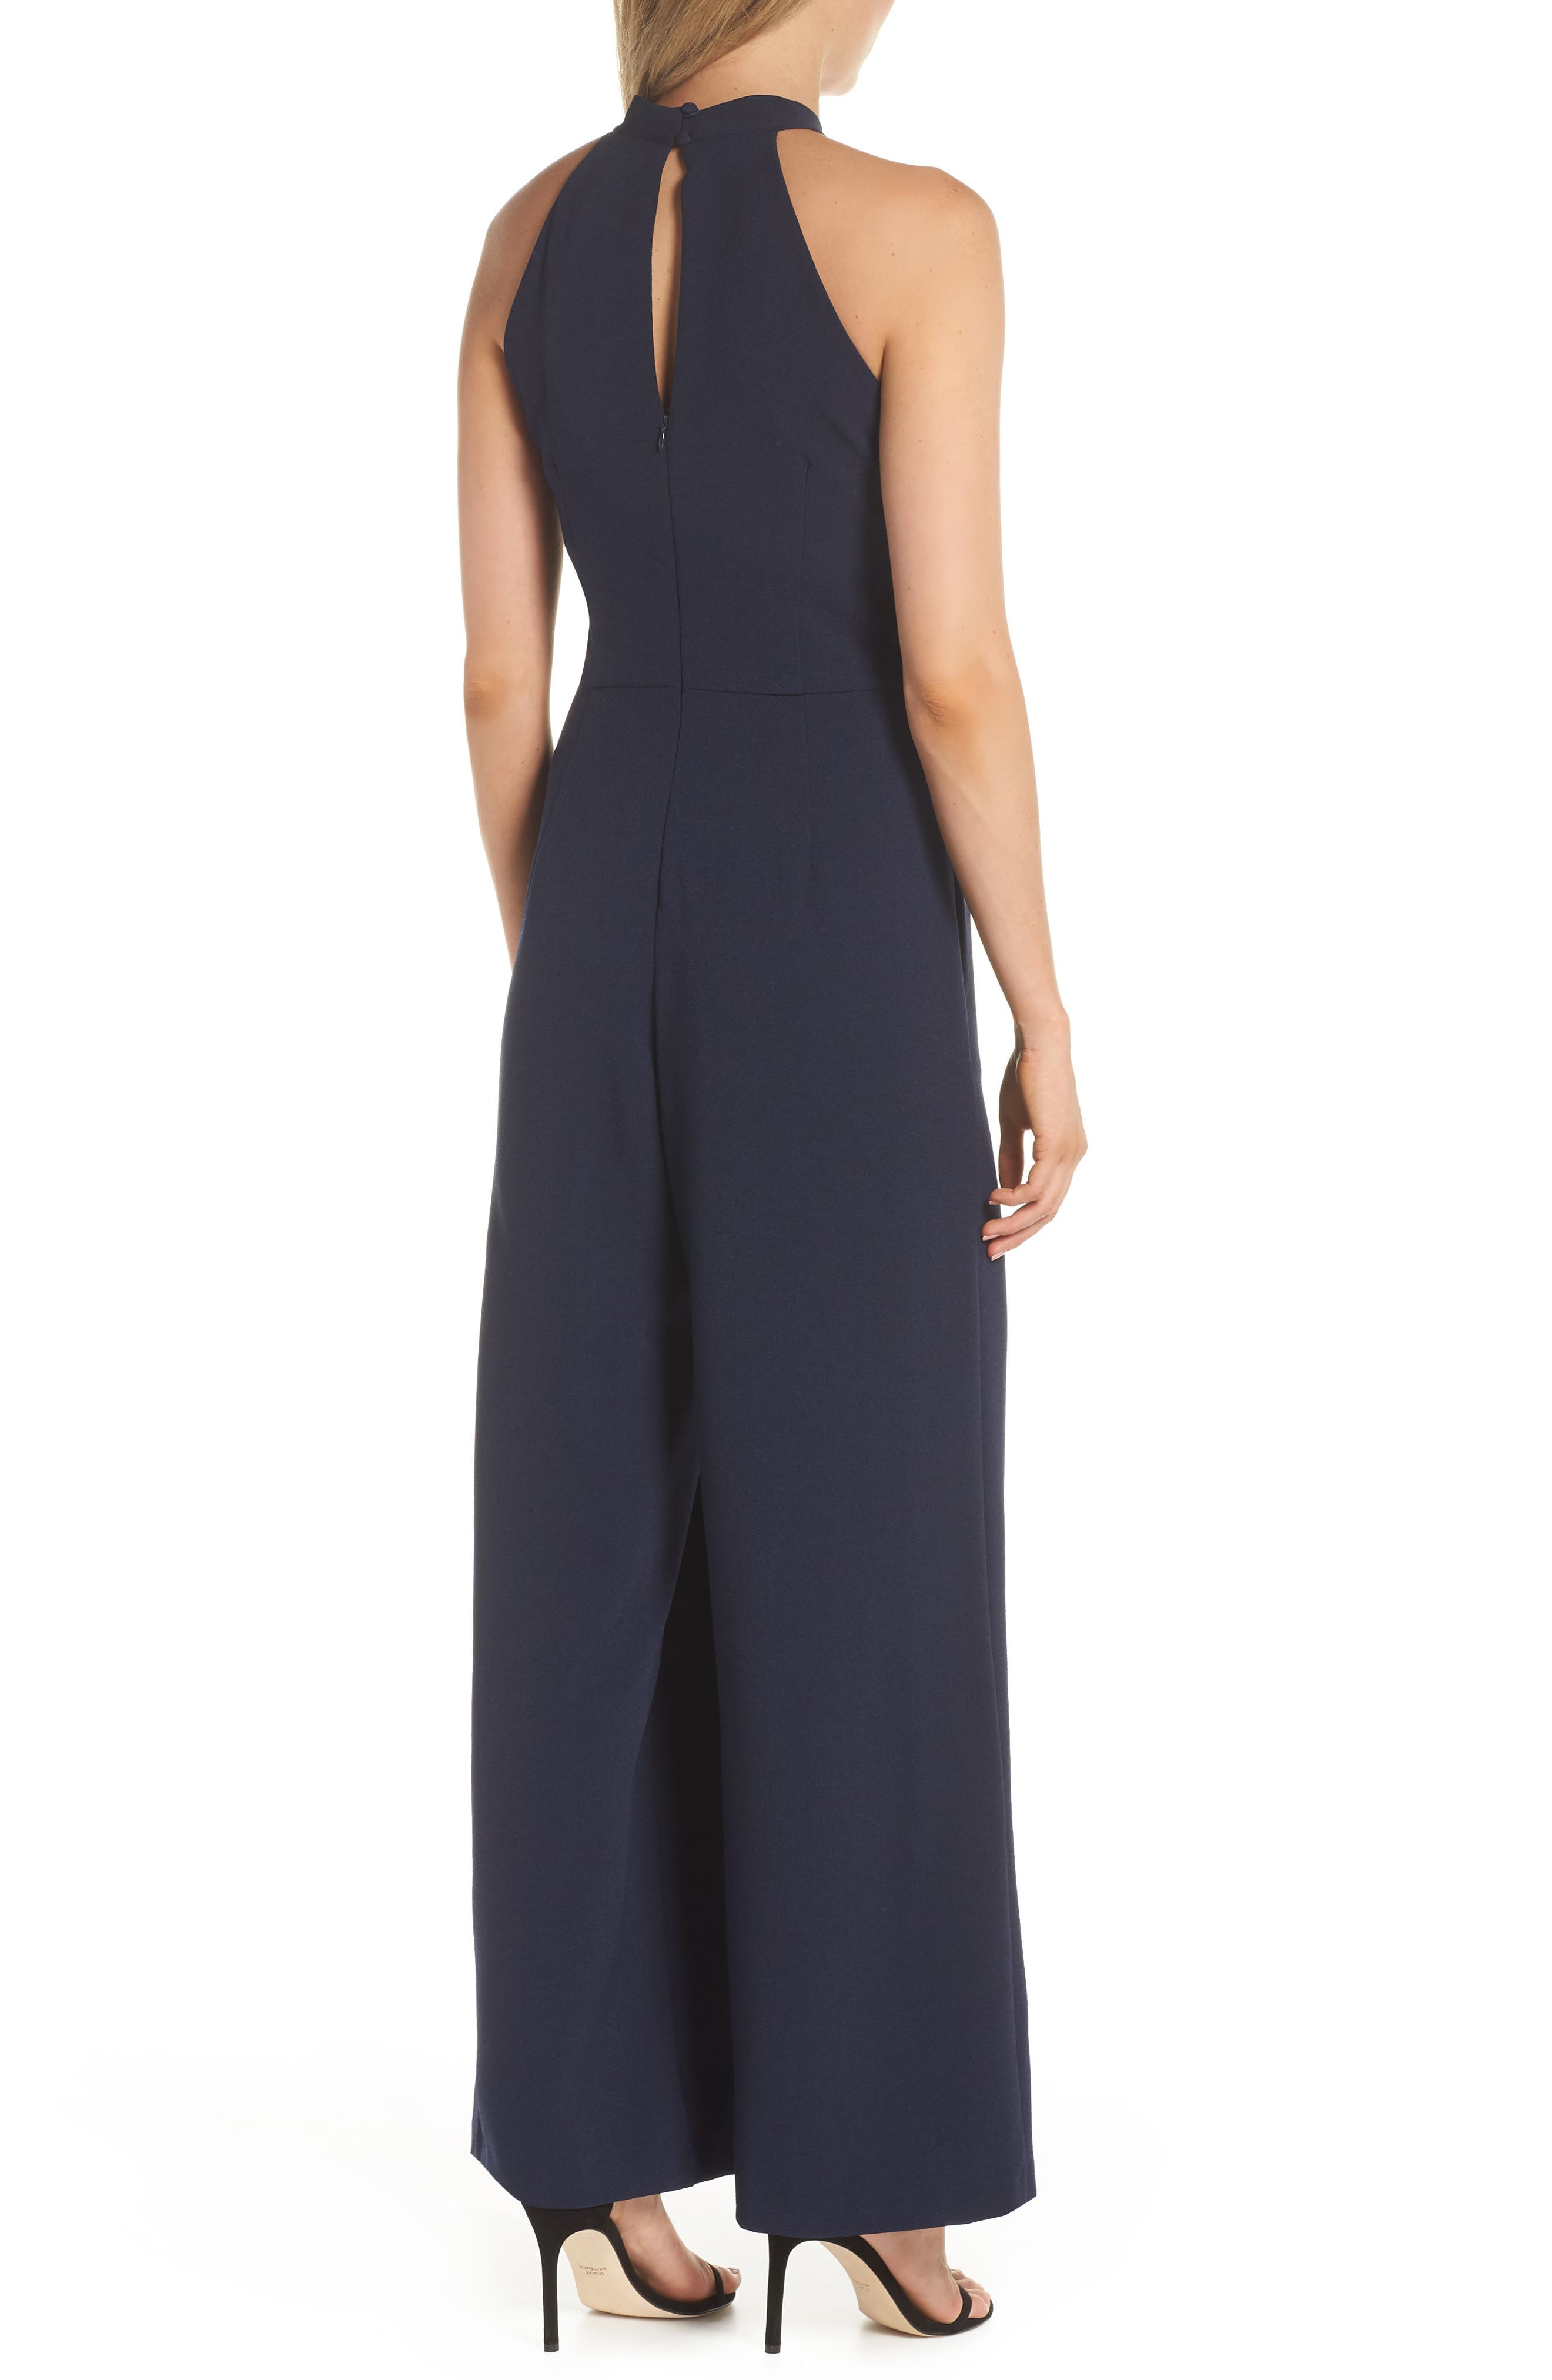 JULIA JORDAN, Halter Wide Leg Jumpsuit, Alternate thumbnail 2, color, NAVY